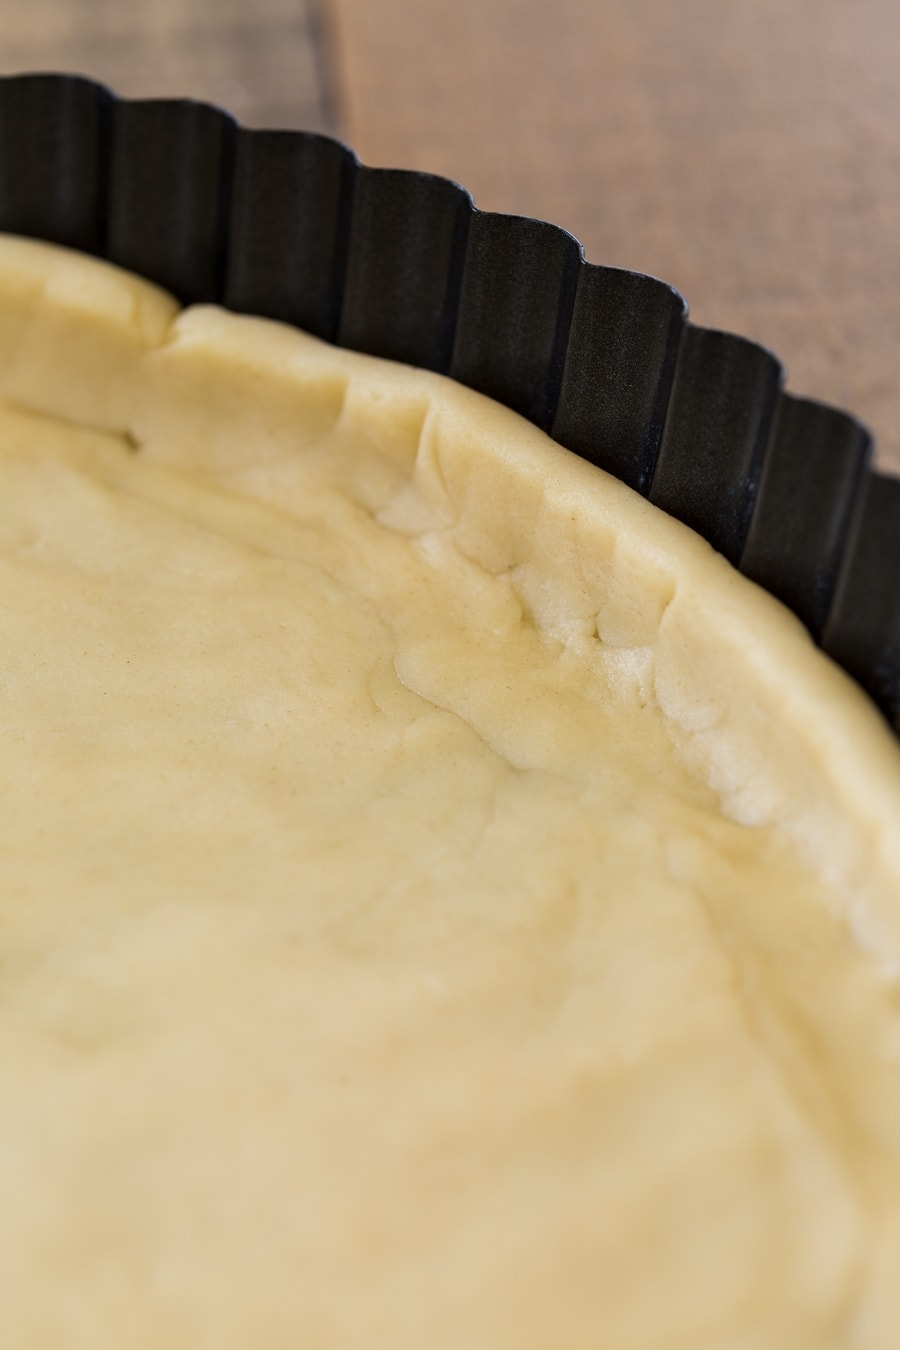 Shortcrust pastry in a tart tin.